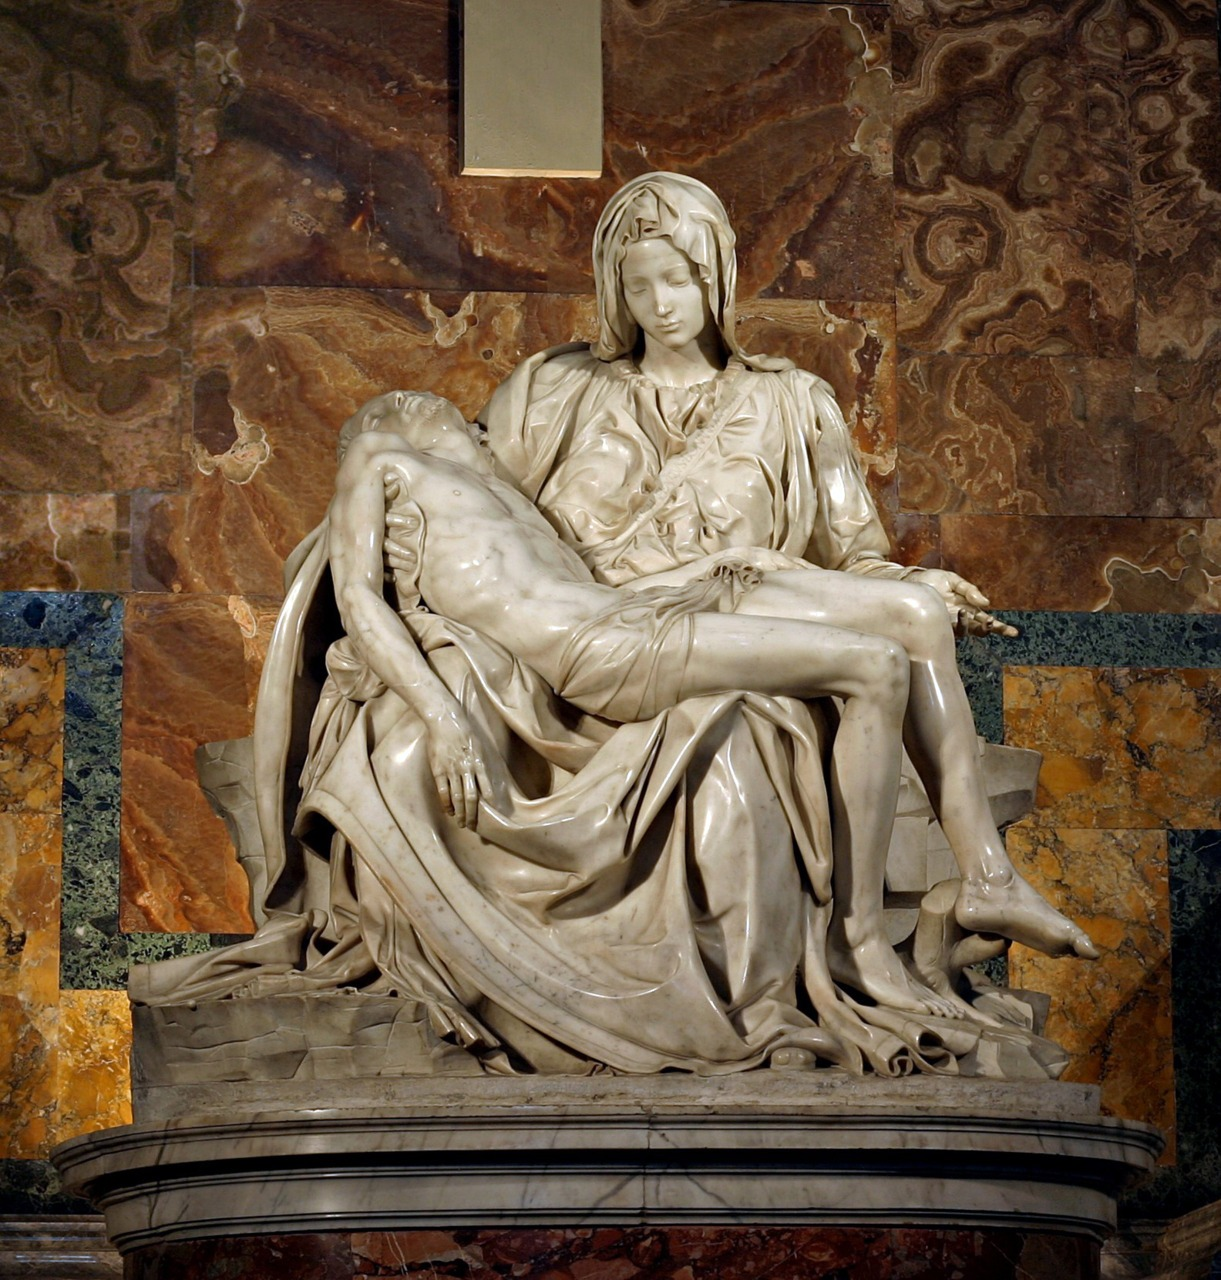 Michelangelo Buonarroti  The Pieta  1498-99